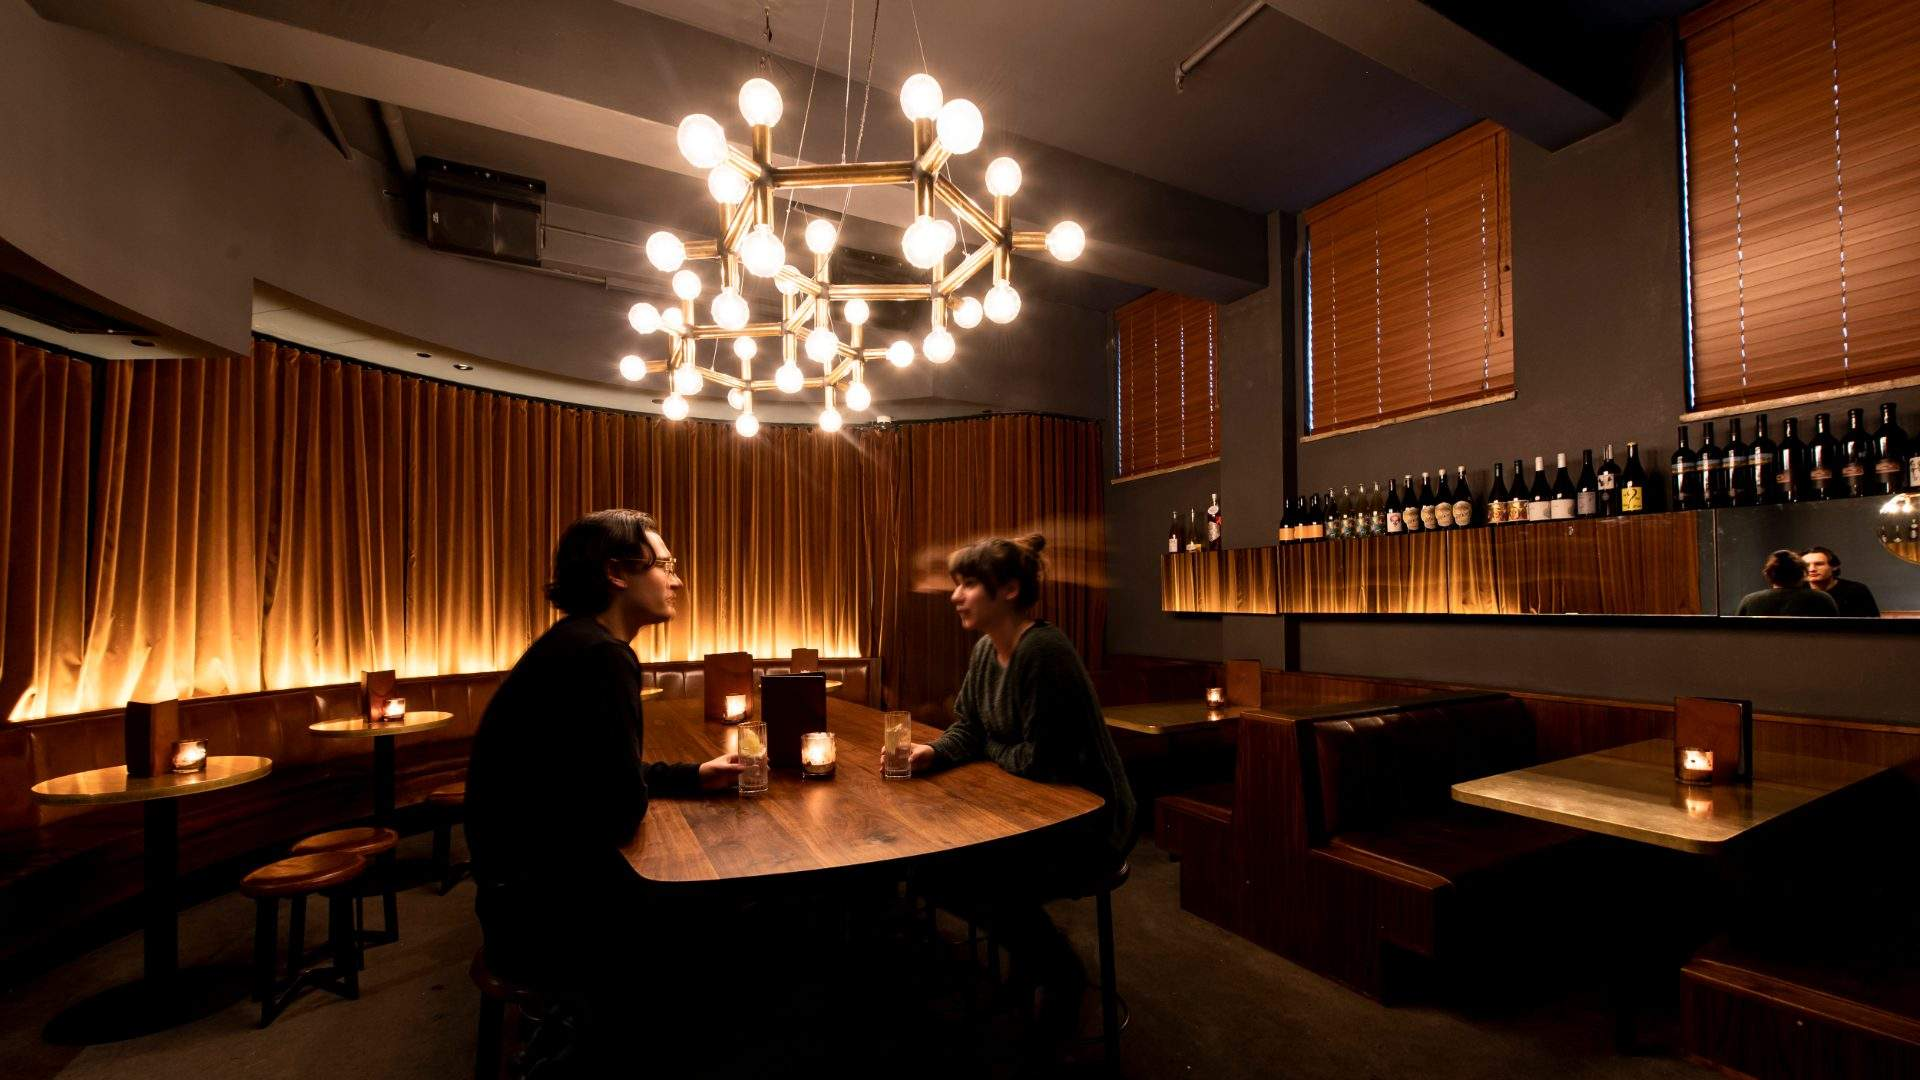 Sydney Bars and Restaurants That Are Undeniably, Unabashedly Romantic